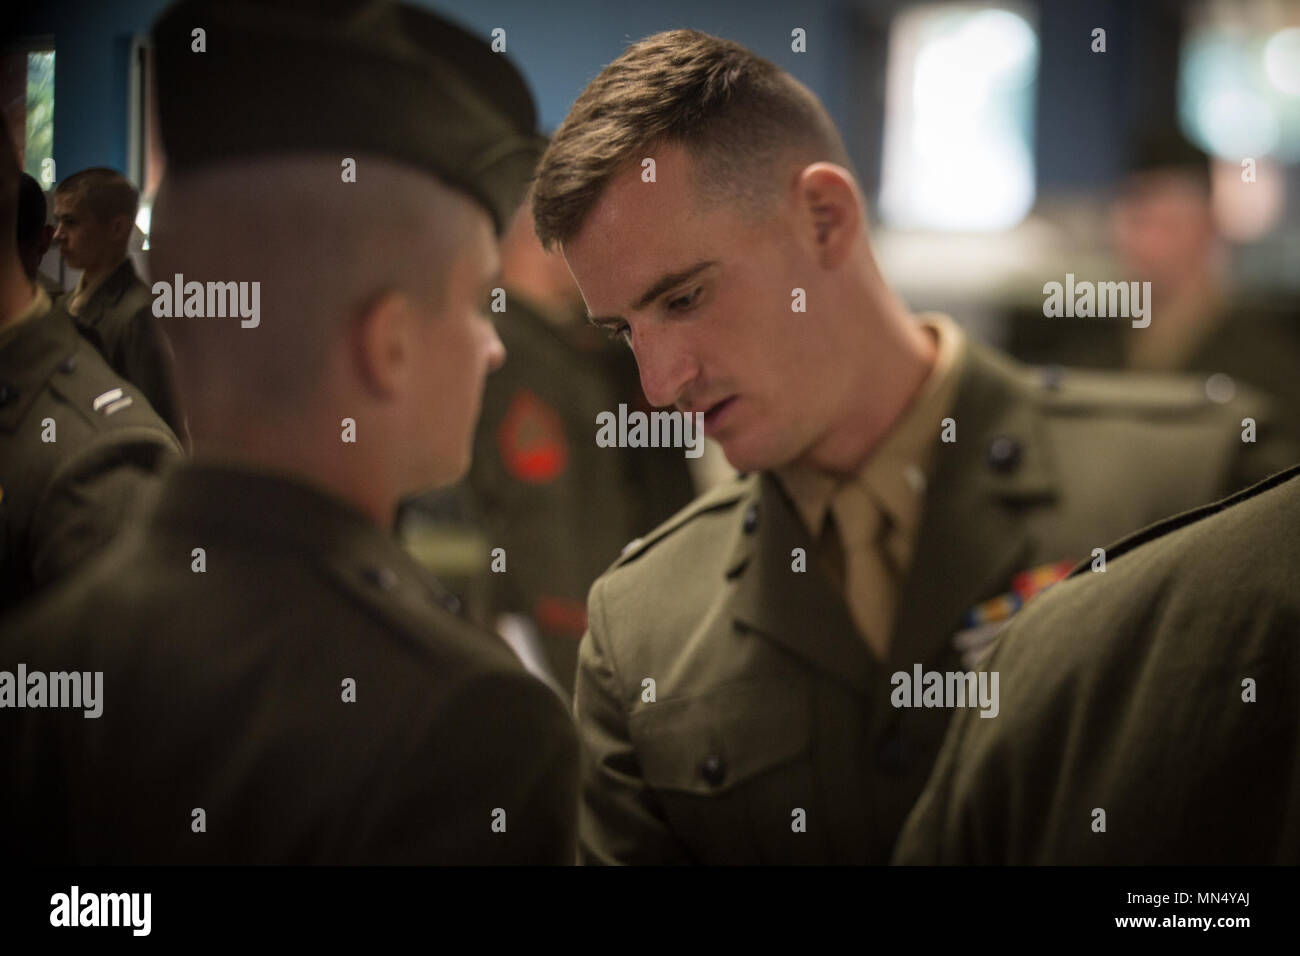 U.S. Marine Corps 1st Lt. Kyle Kavanagh, an assistant series commander of Mike Company, 3rd Recruit Training Battalion, inspects a Marine's uniform Aug. 23, 2017, on Parris Island, S.C. Formal inspections held by sergeants and officers, like Kavanagh, 26, from Valhalla, N.Y., ensure Marines have properly fitted uniforms as well as possess attention to detail, bearing, confidence and discipline. India Company is scheduled to graduate Aug. 25, 2017. Parris Island has been the site of Marine Corps recruit training since Nov. 1, 1915. Today, approximately 20,000 recruits come to Parris Island annu - Stock Image